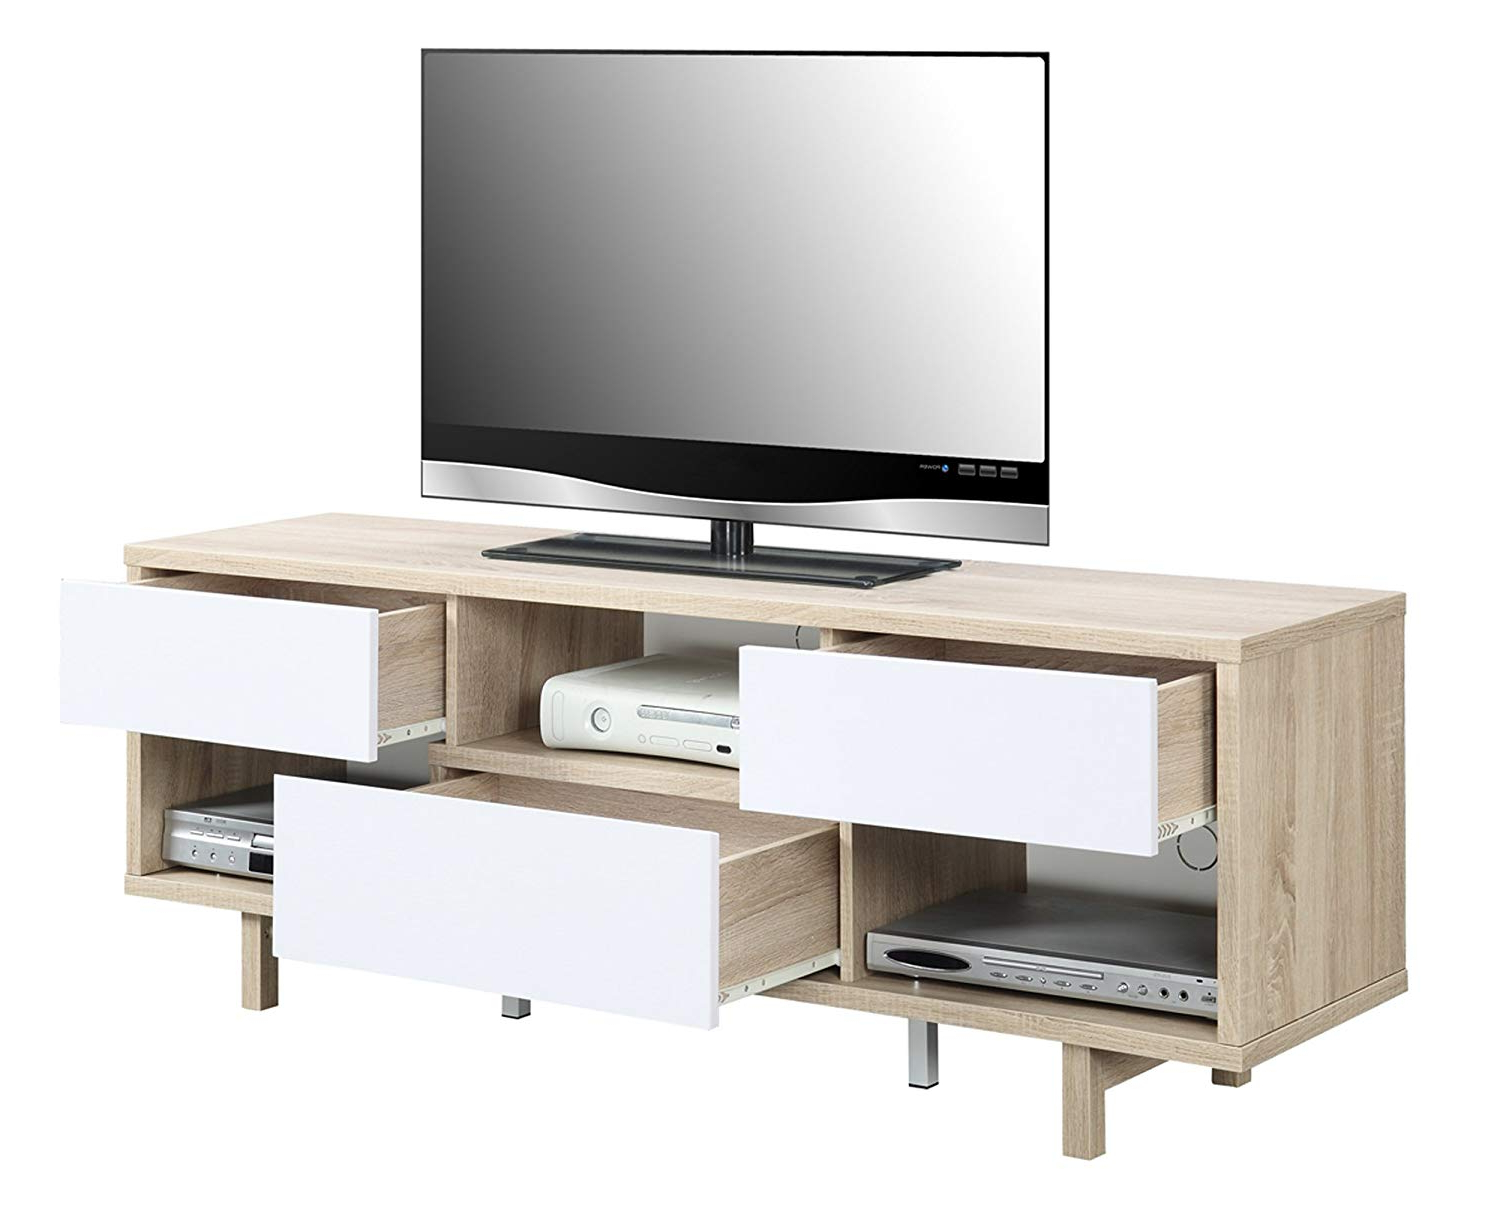 Amazon: Convenience Concepts Designs2go Newport Ventura 60 Inch Regarding 2018 Preston 66 Inch Tv Stands (View 6 of 20)